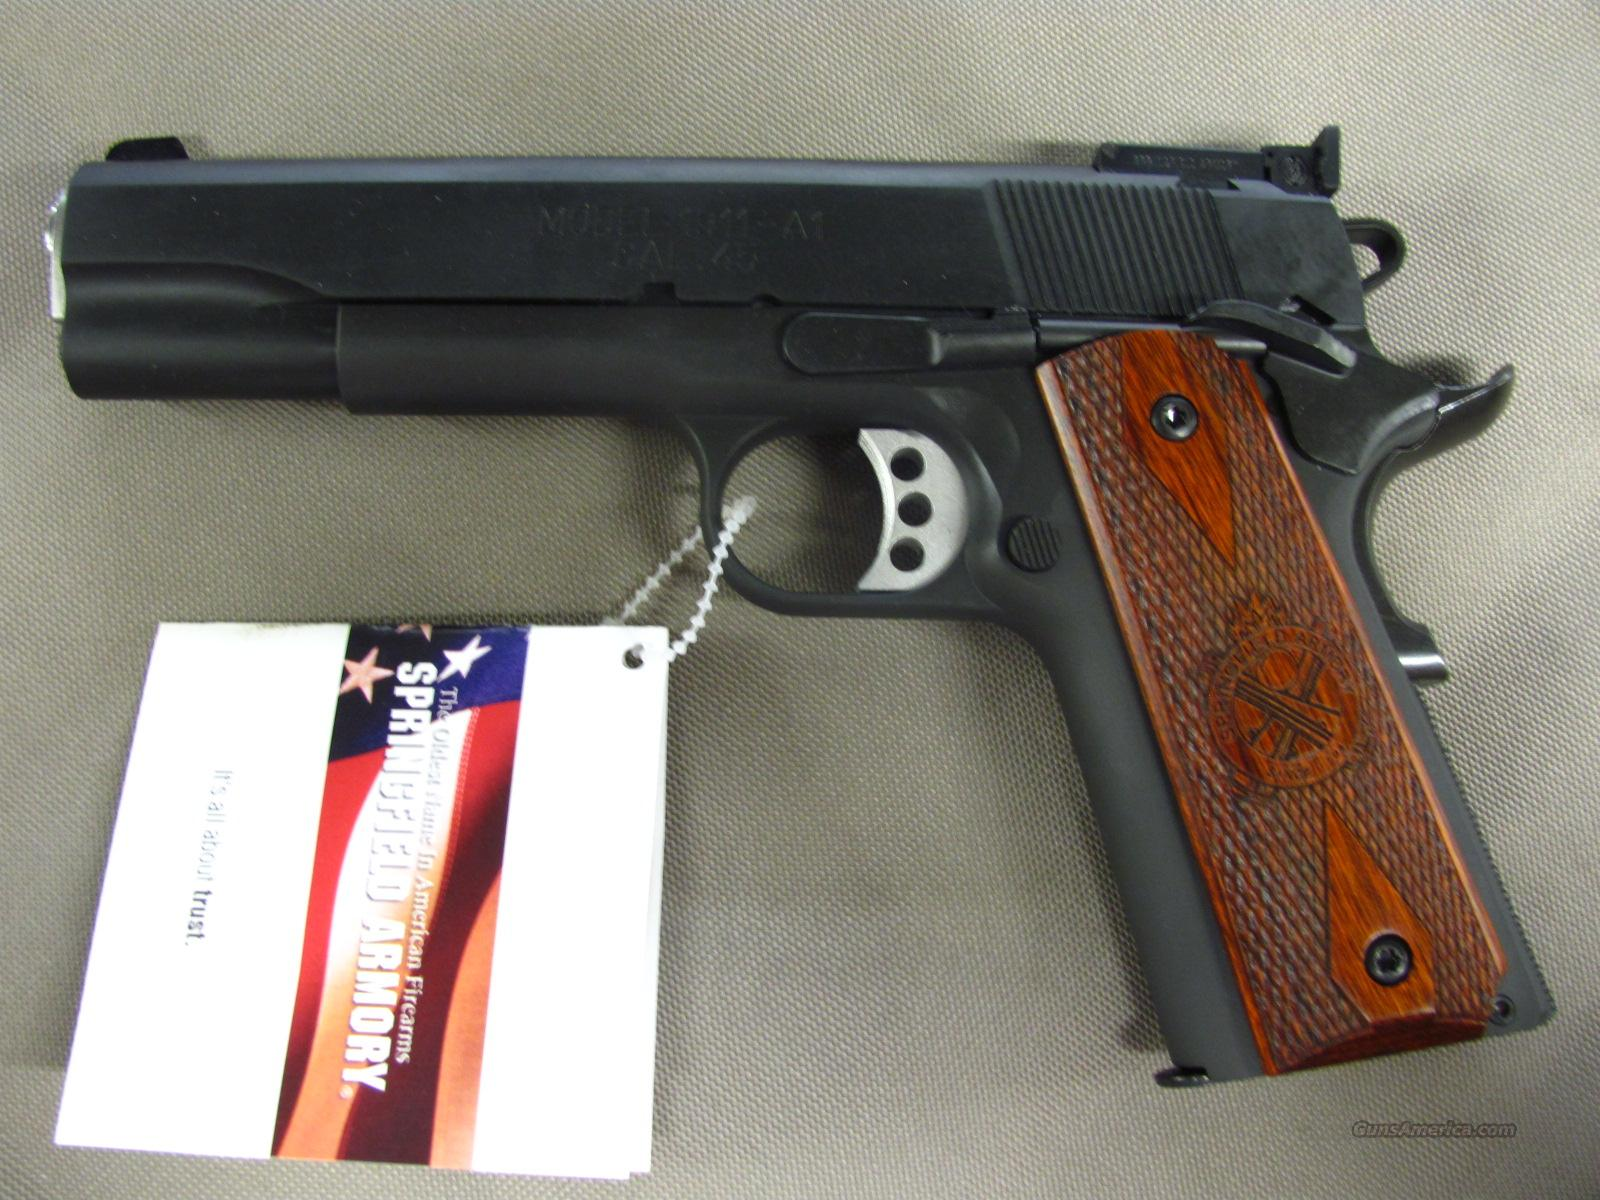 Springfield 1911 A1 Range Officer 9 mm PI9129  **NEW**  Guns > Pistols > Springfield Armory Pistols > 1911 Type